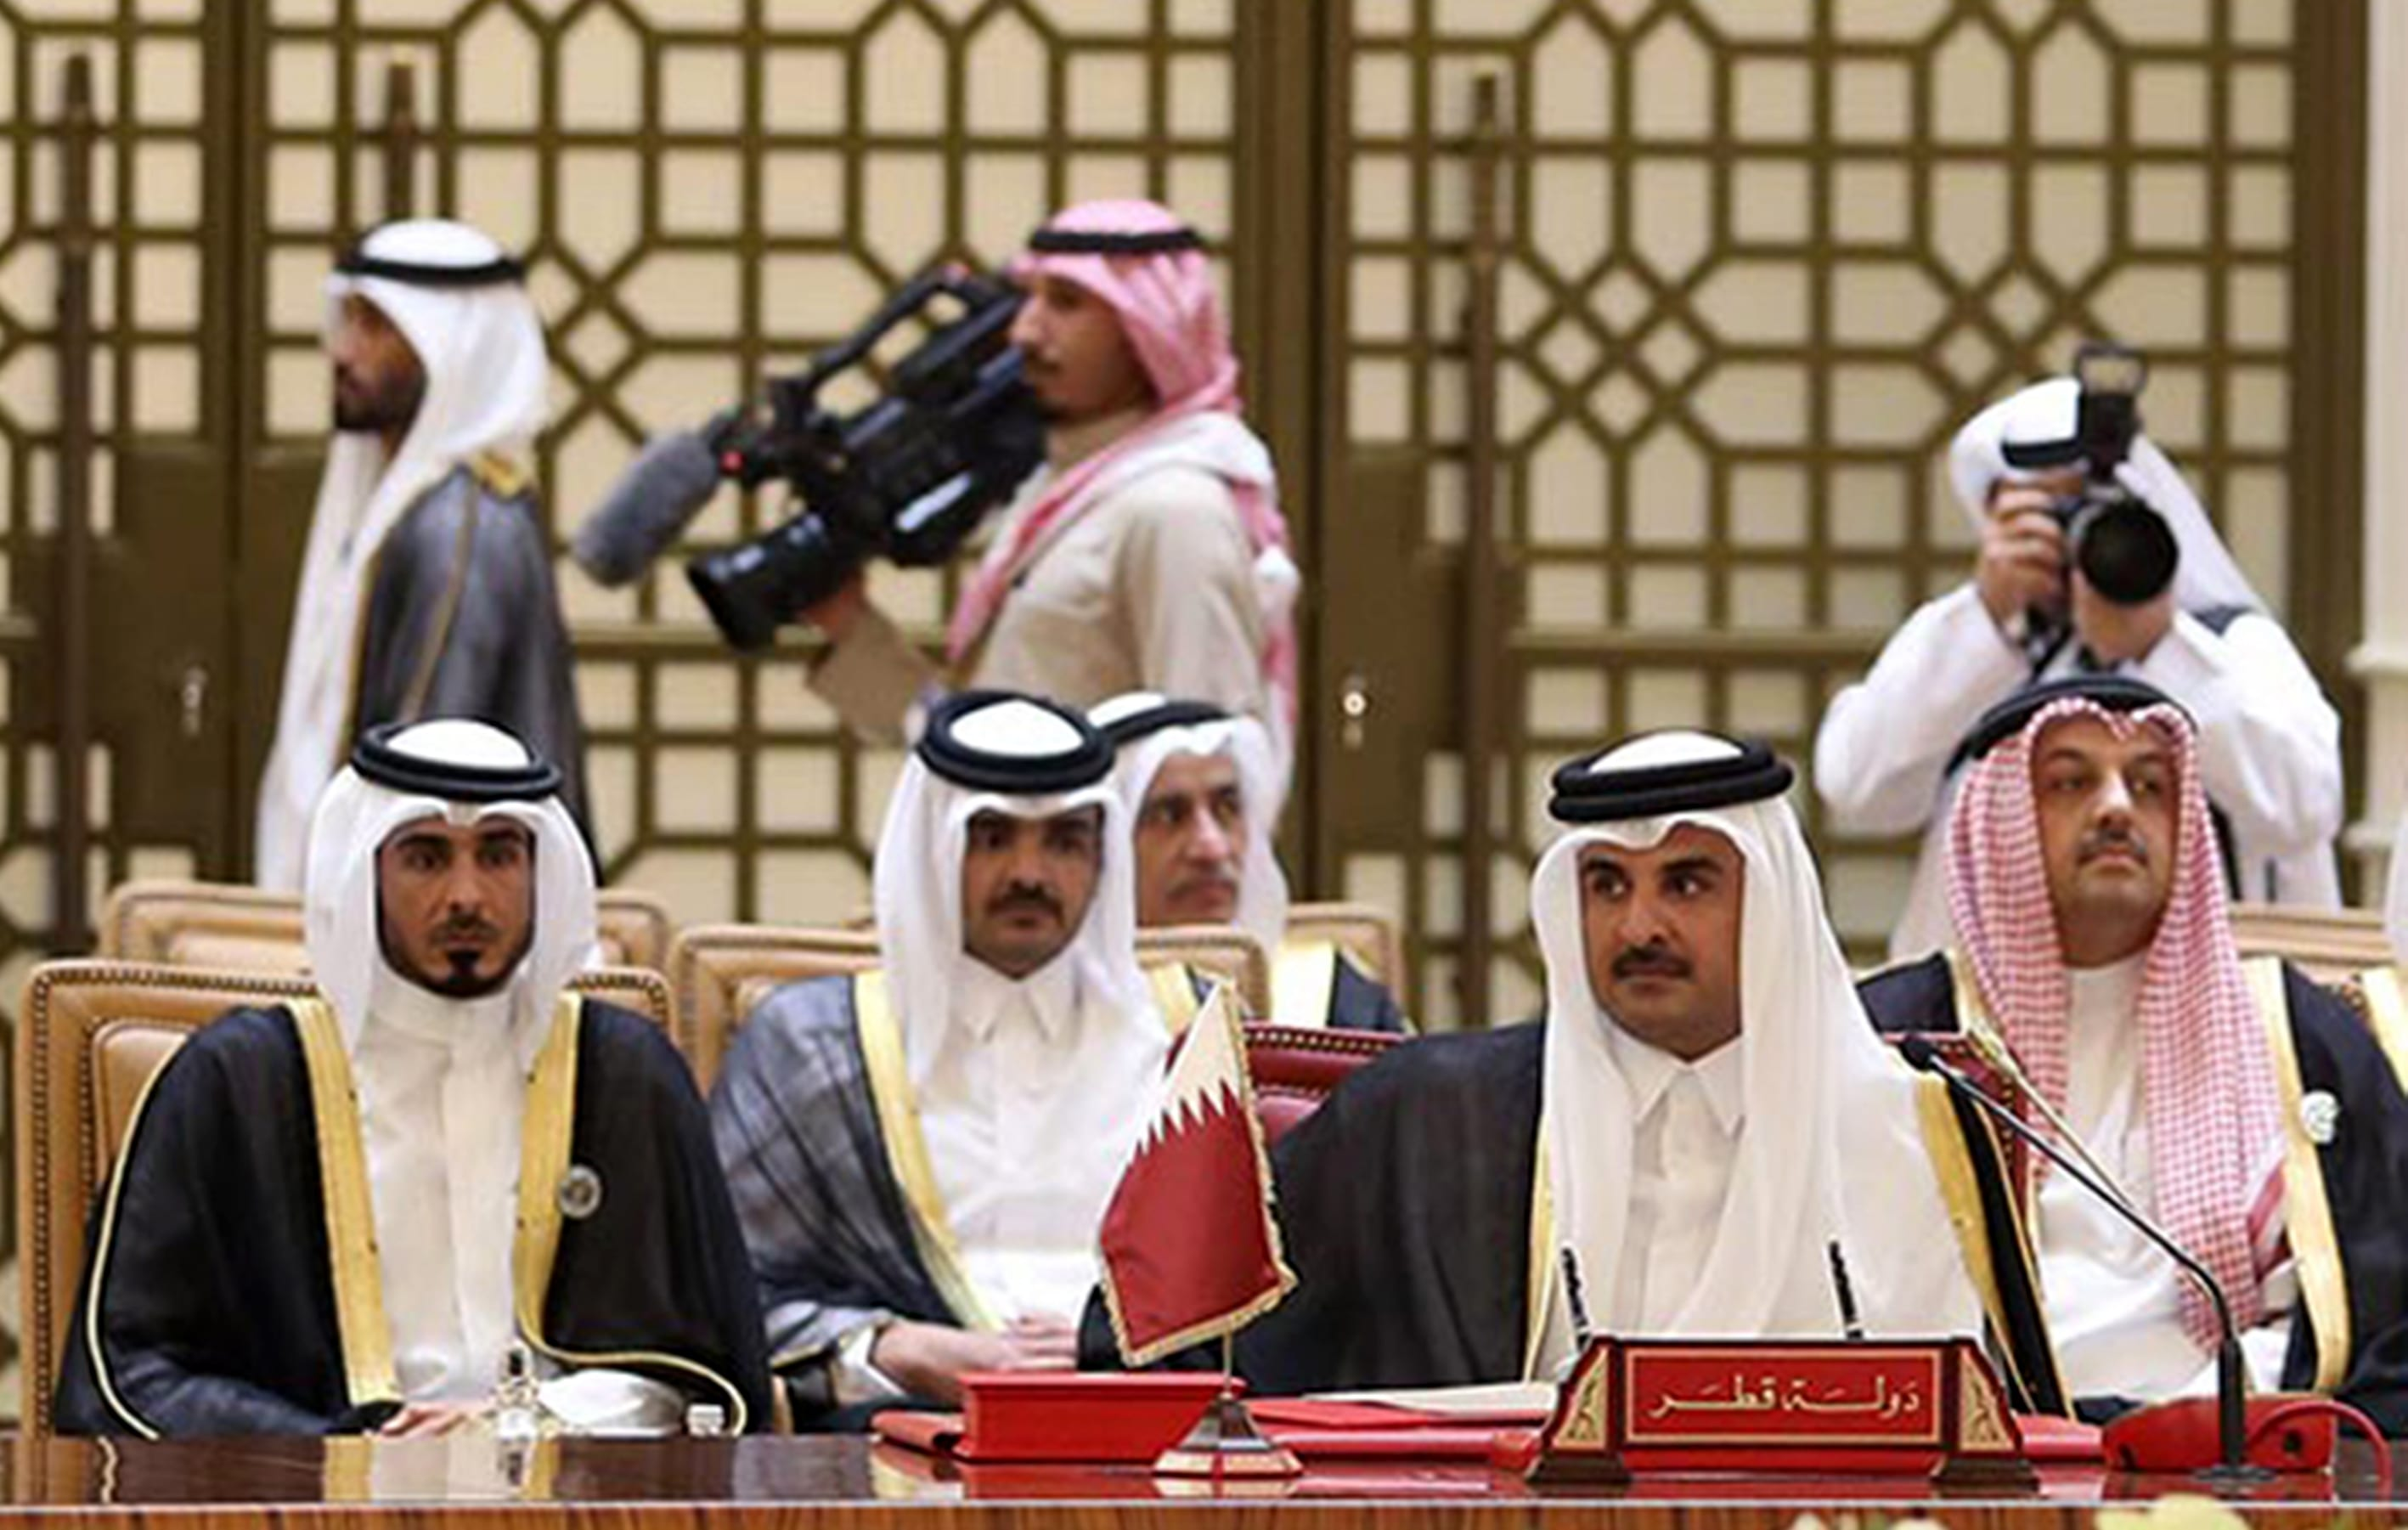 Bahrain 'asks Qatari troops to leave'